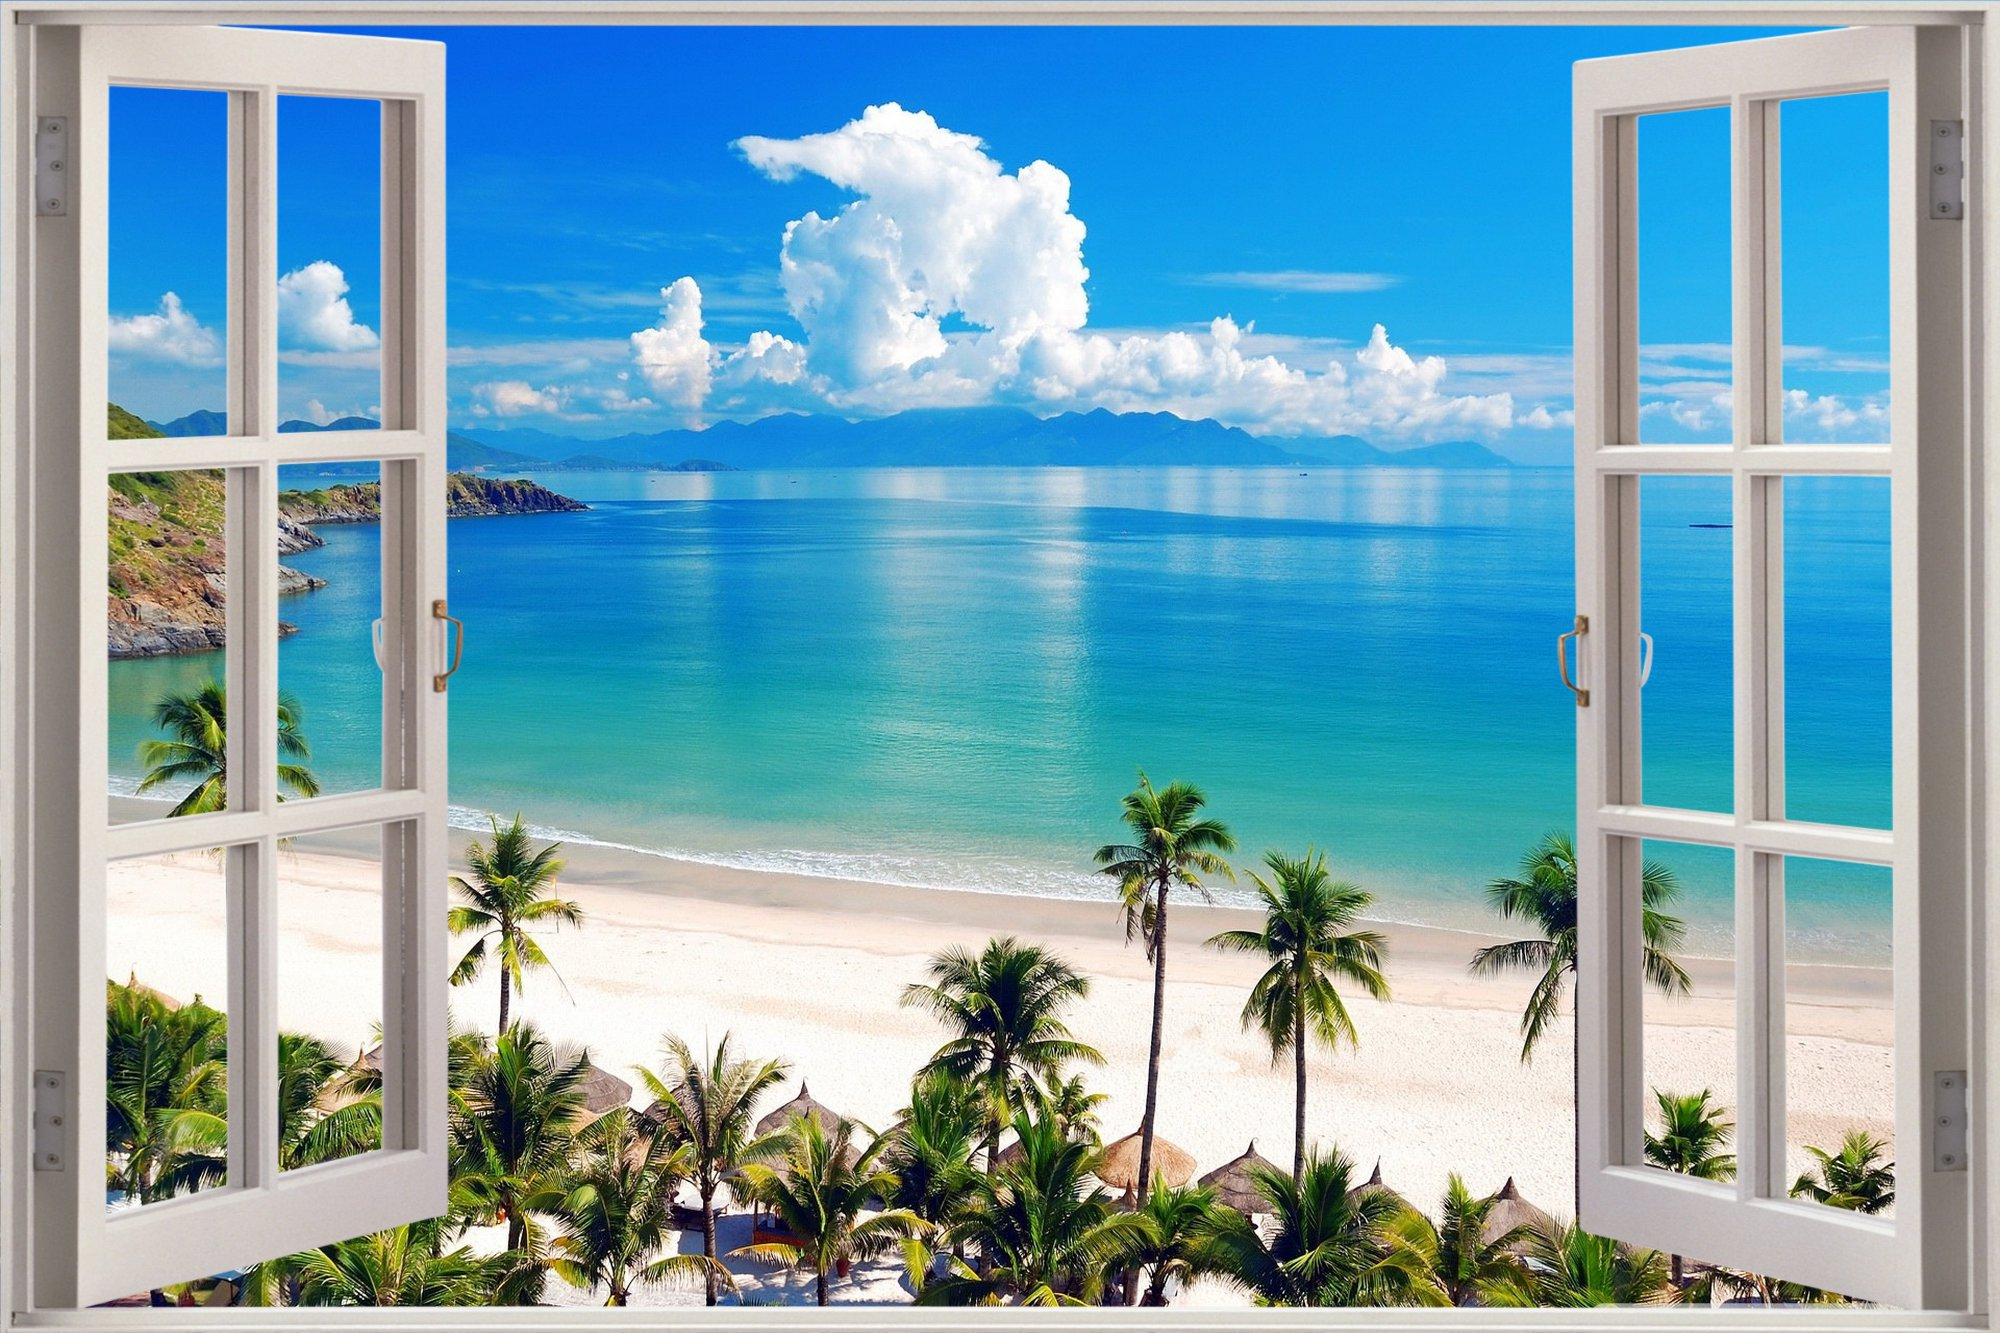 Ocean Beach View Wall Stickers Film Art Decal Wallpaper 85 eBay 2000x1333